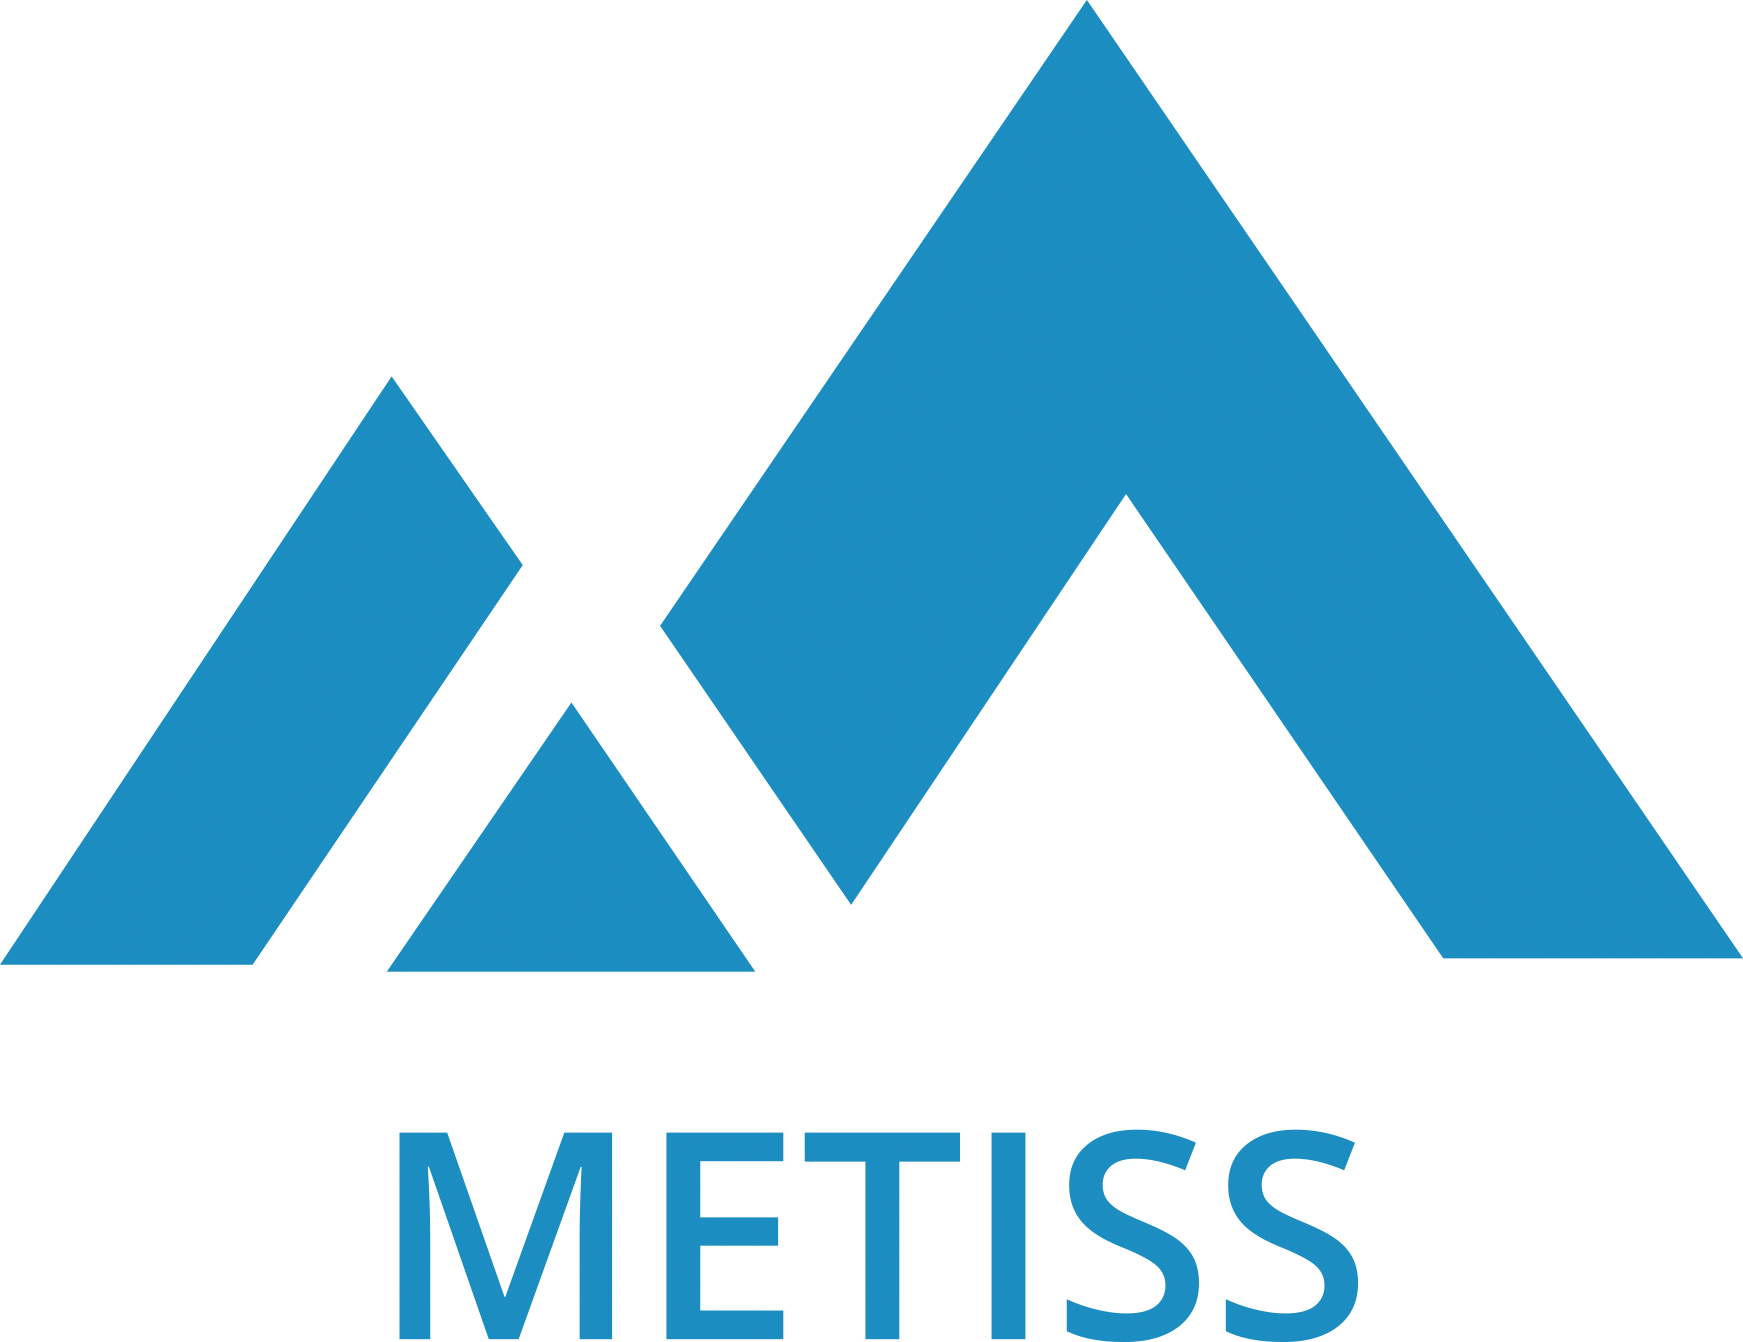 my project, metiss